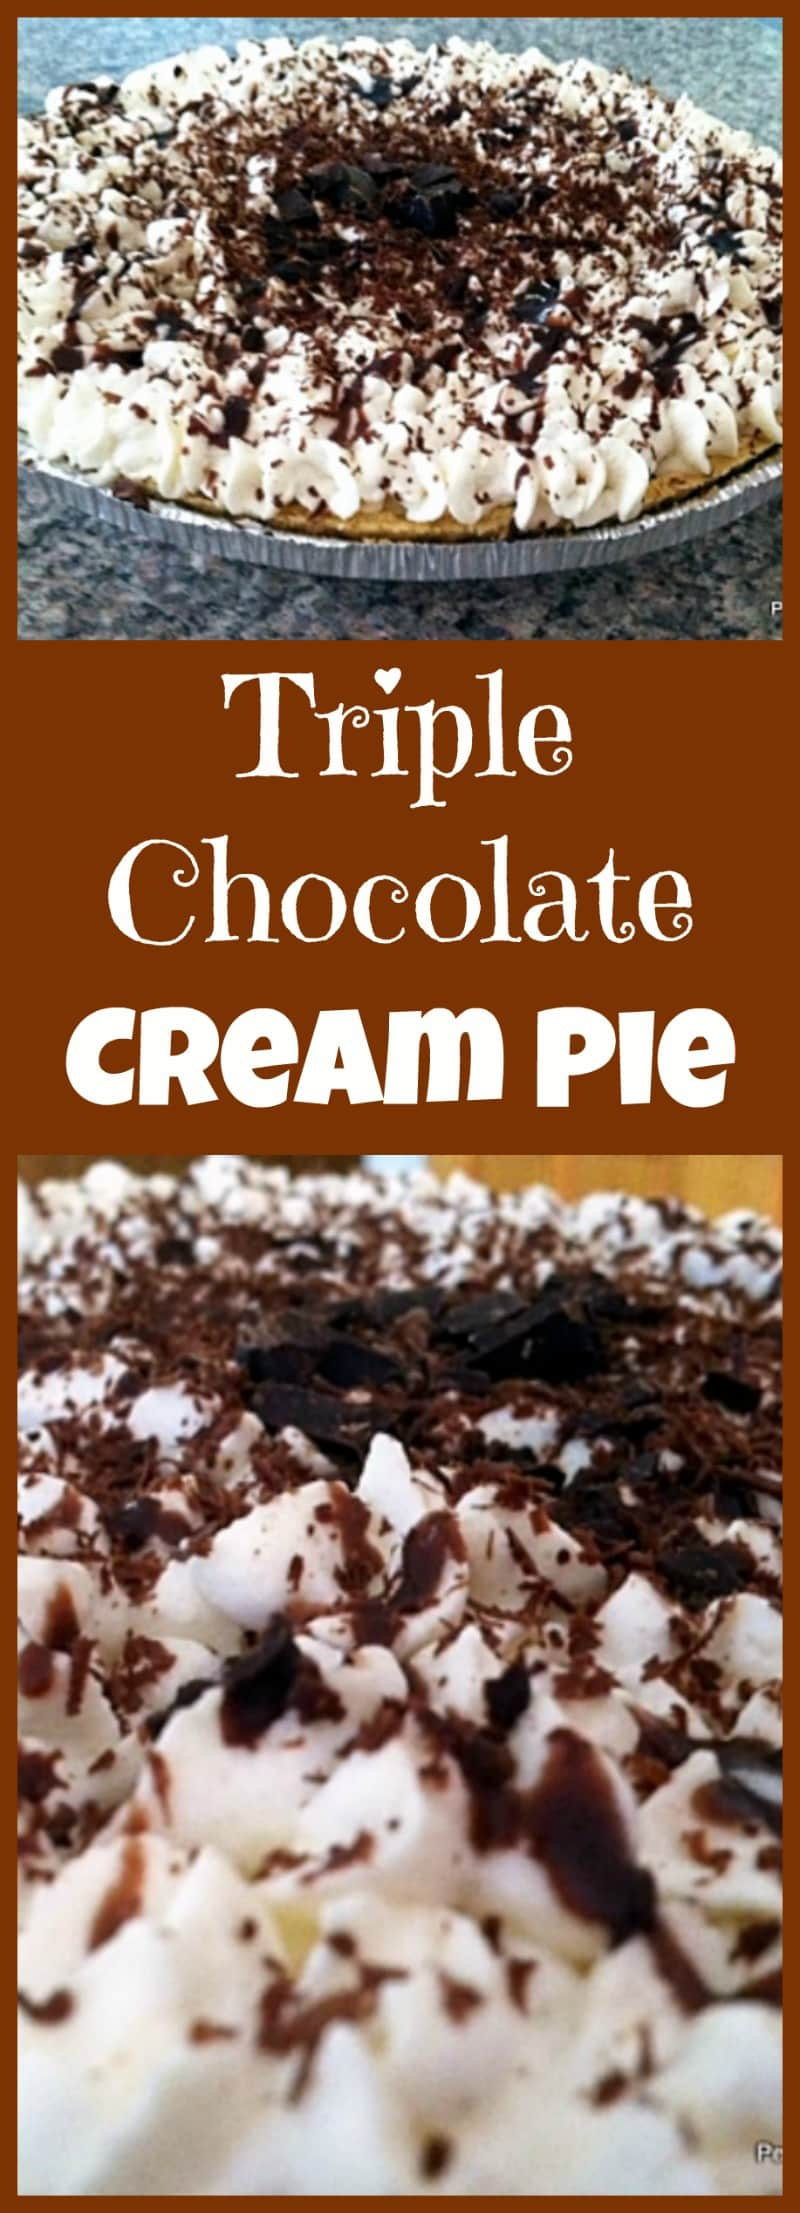 Triple Chocolate Cream Pie. Easy to make and of course super delicious! Serve chilled and enjoy!